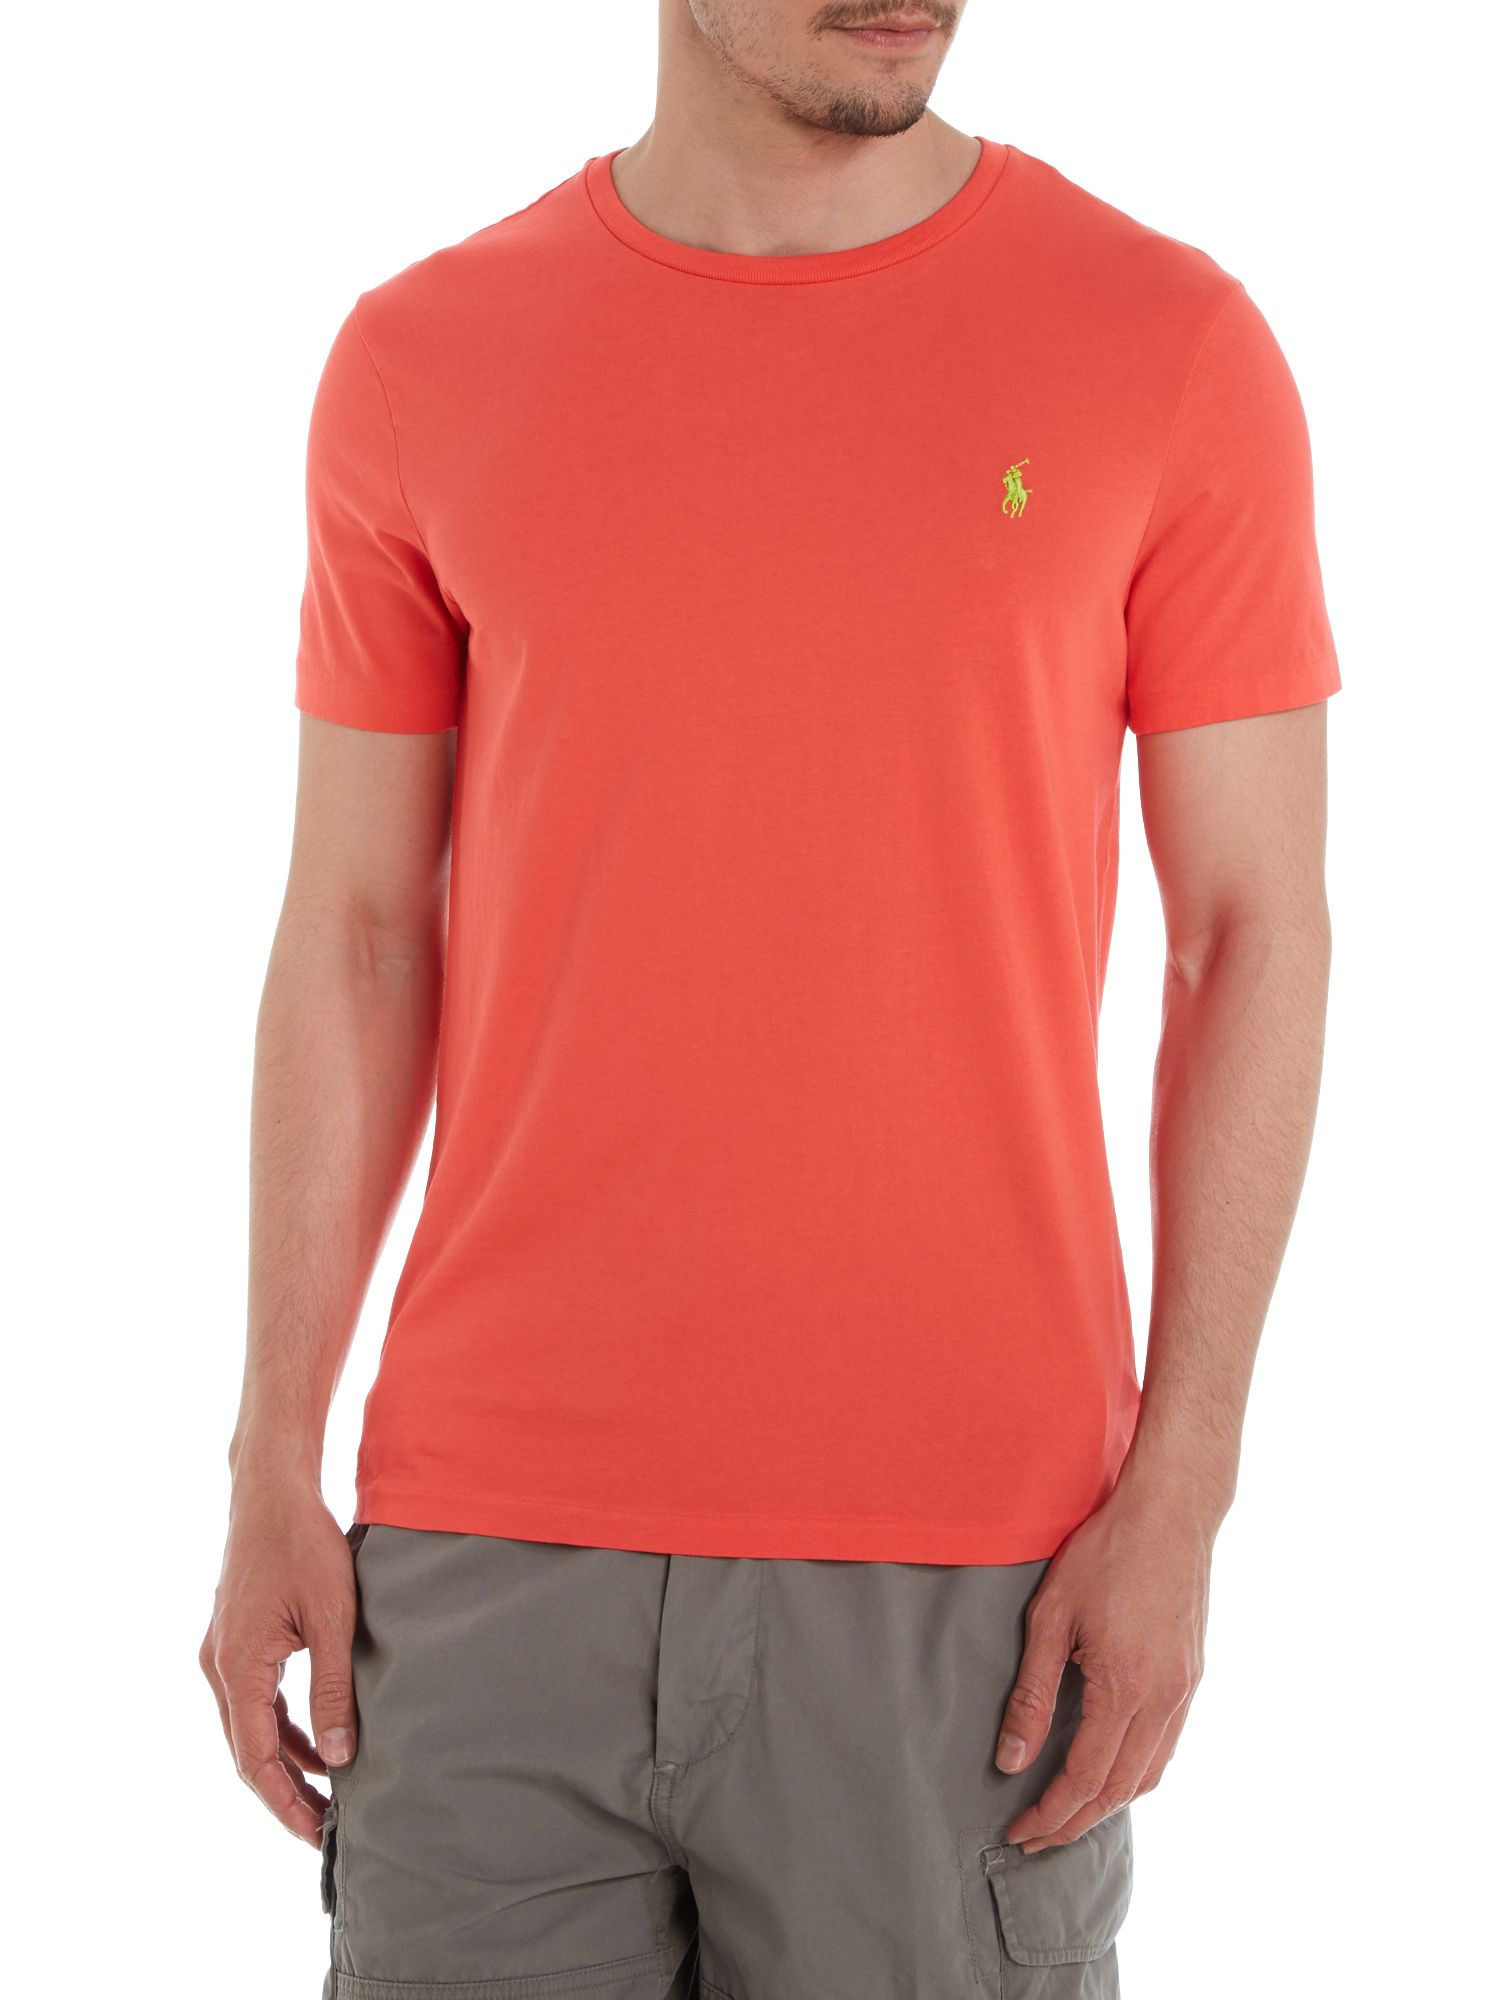 Polo ralph lauren crew neck combed jersey t shirt in for What is polo neck t shirts